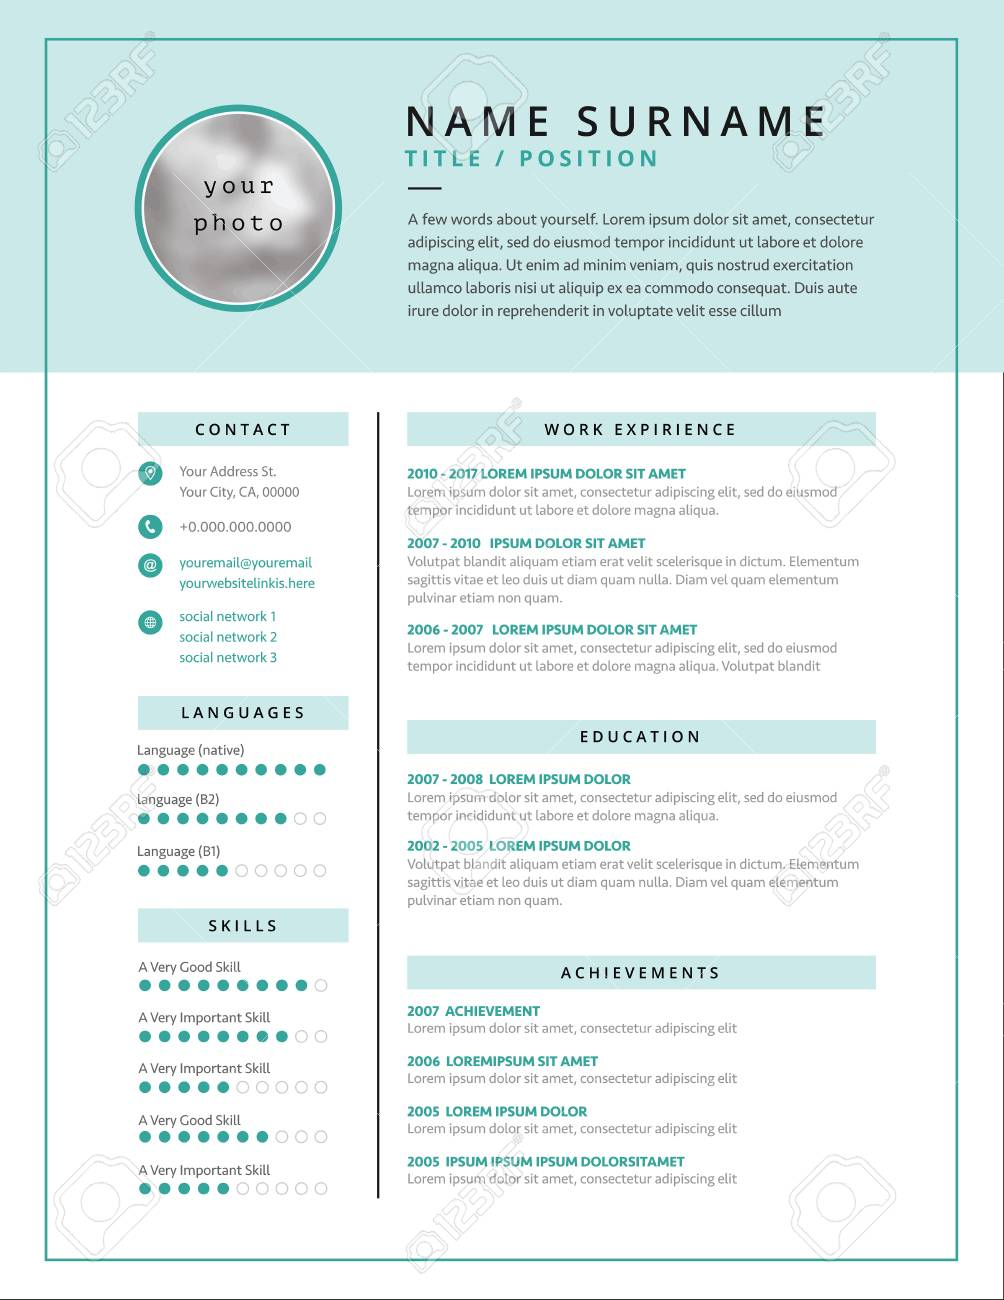 medical cv resume template example design for doctors white and teal color background curriculum